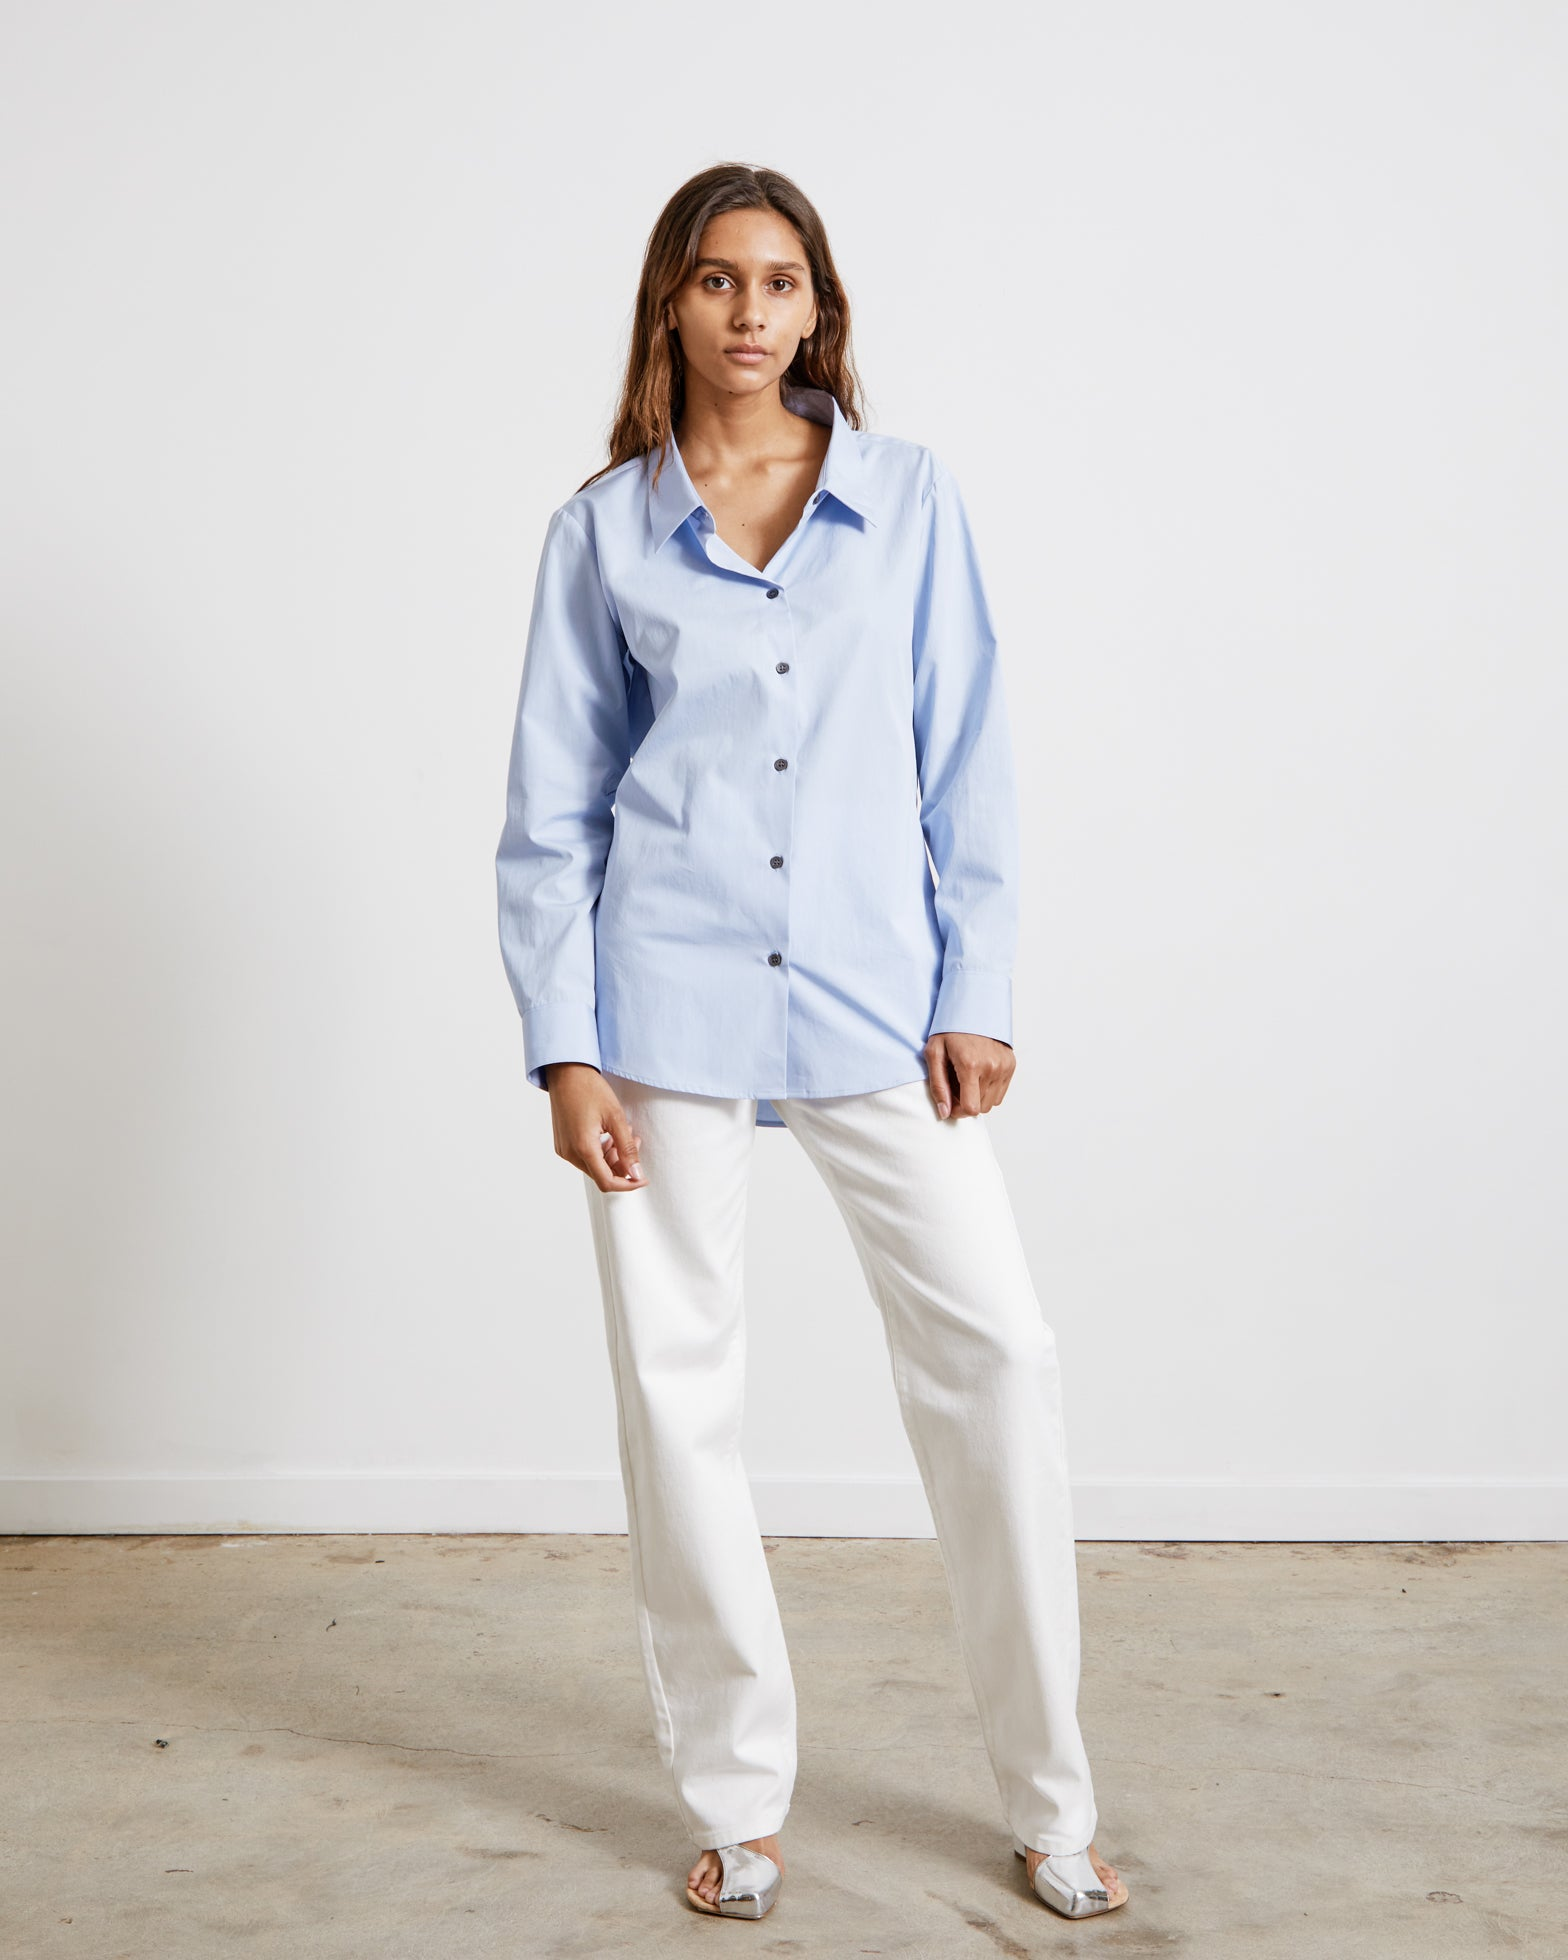 Camee 2228 W.W. Shirt in Light Blue